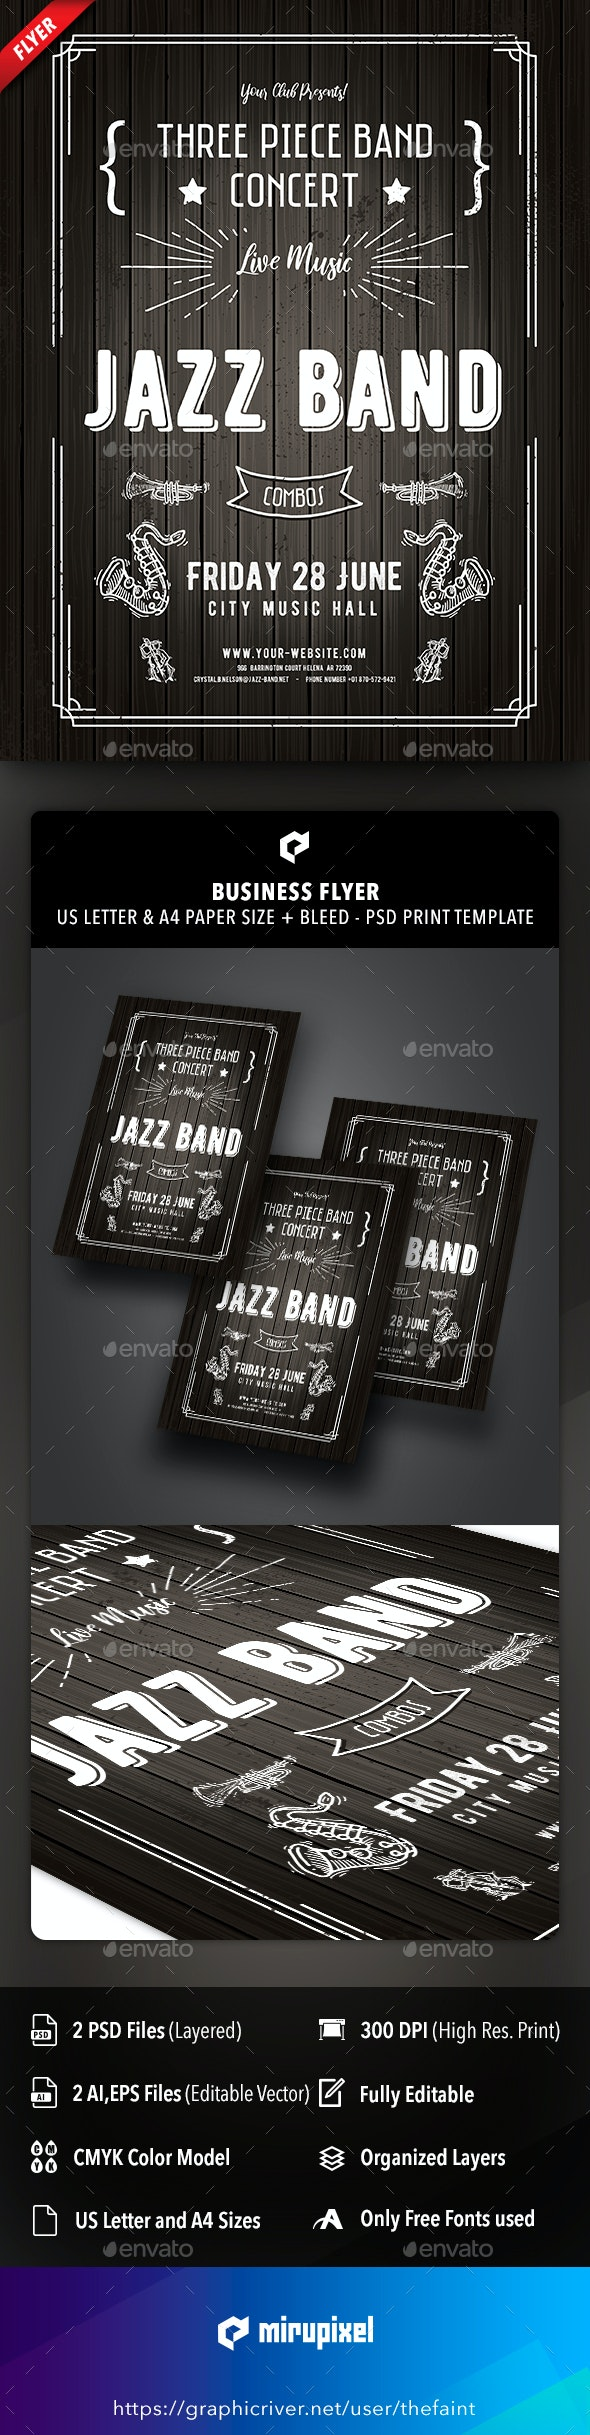 Jazz Band Business Flyer - Concerts Events